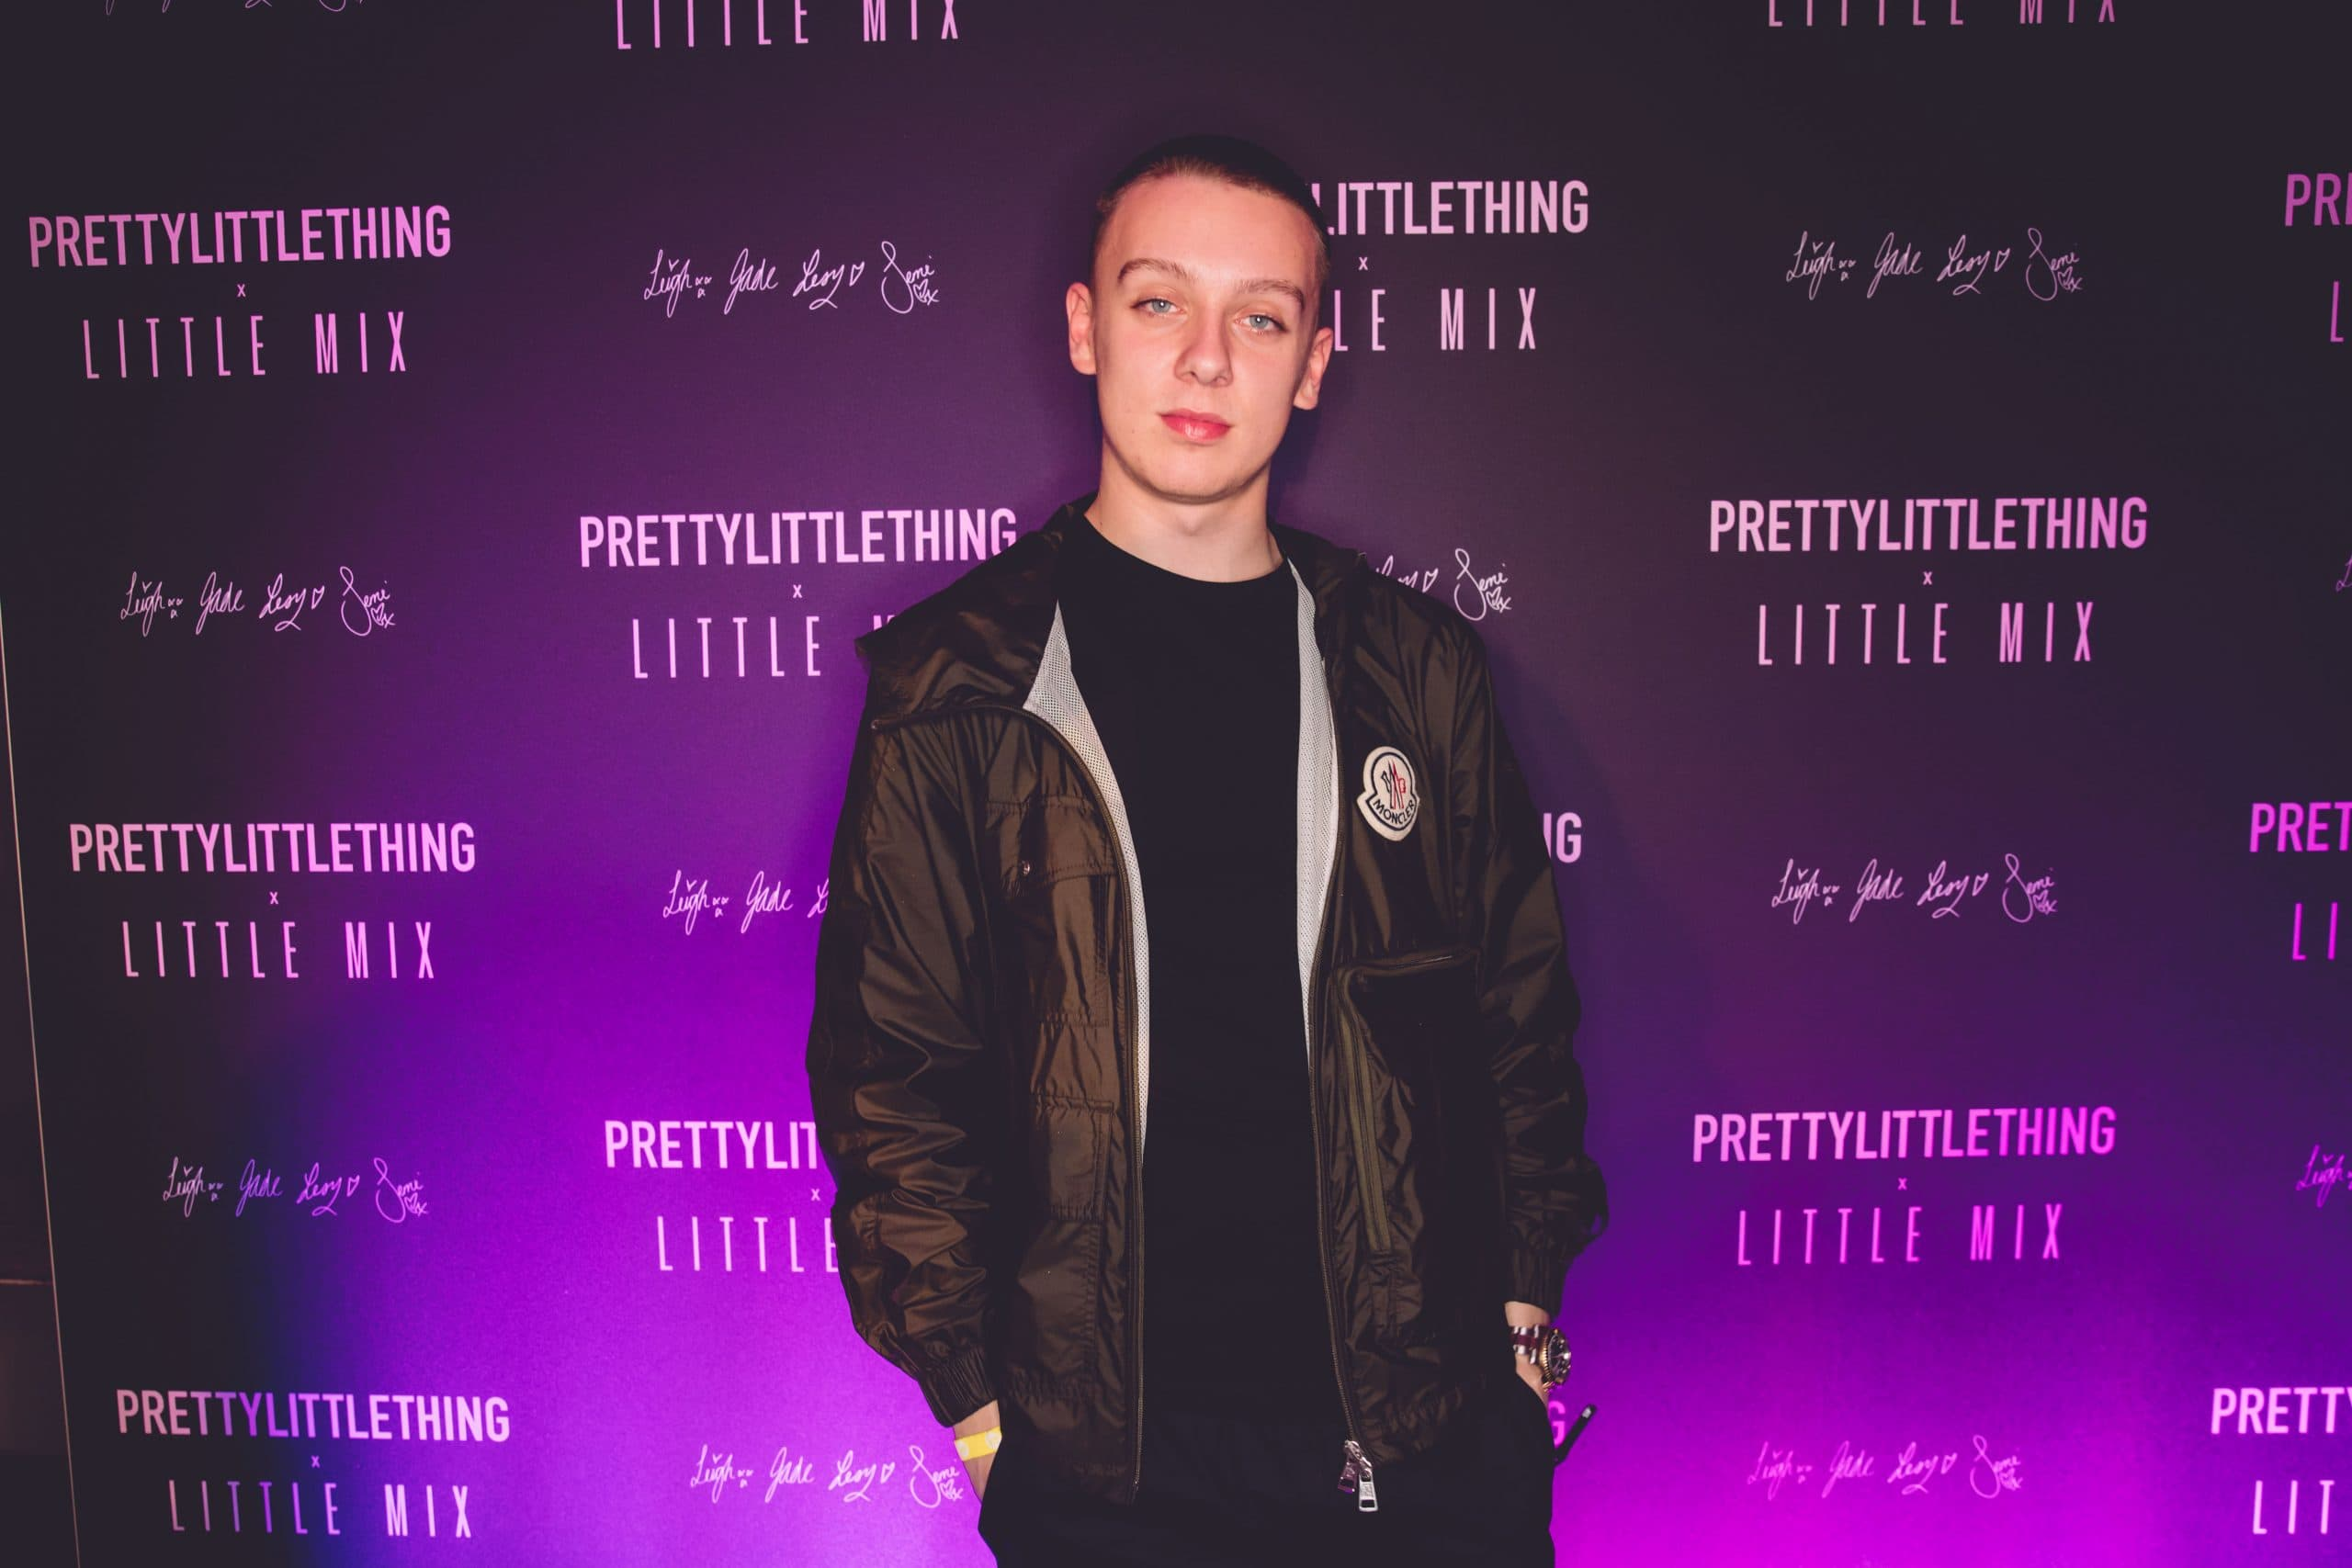 Aitch at Little Mix & Pretty Little Thing launch party